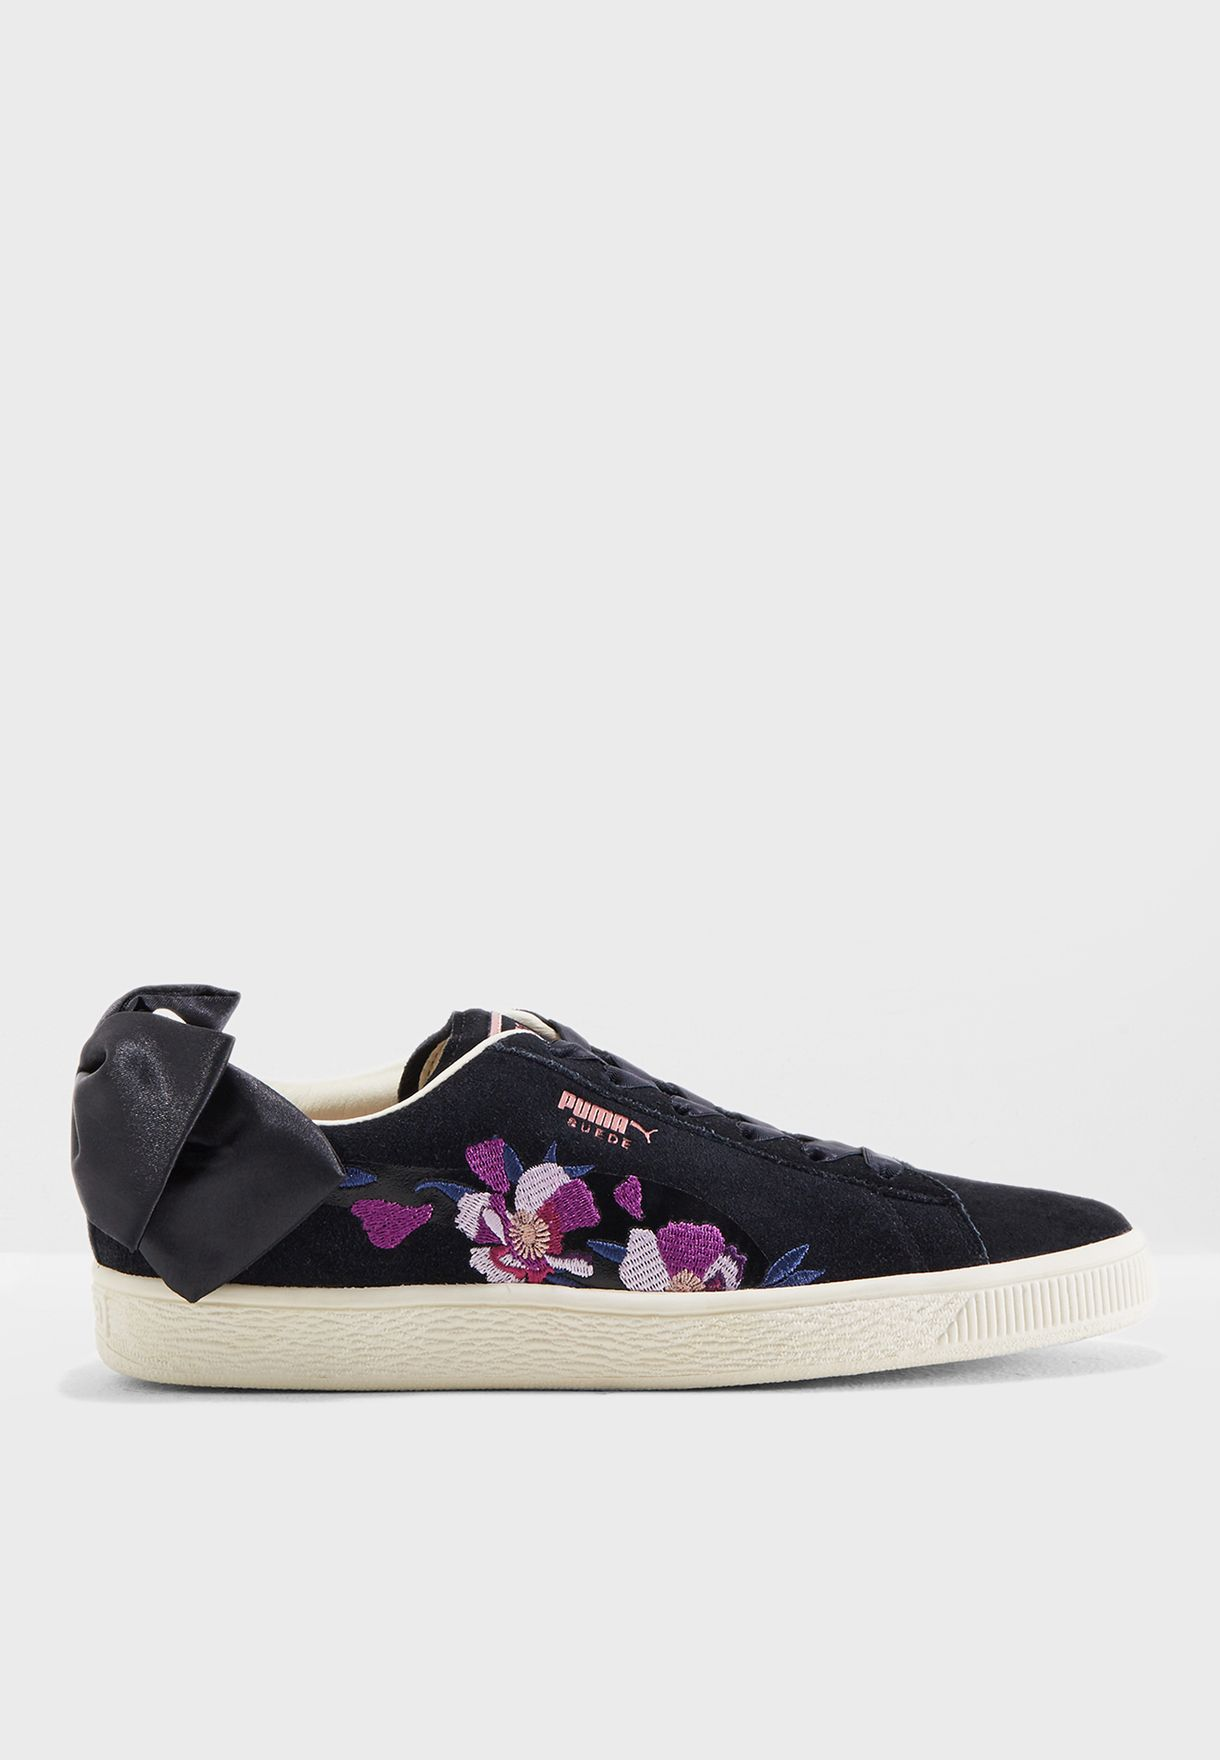 Buy Puma Black Suede Bow Flowery for